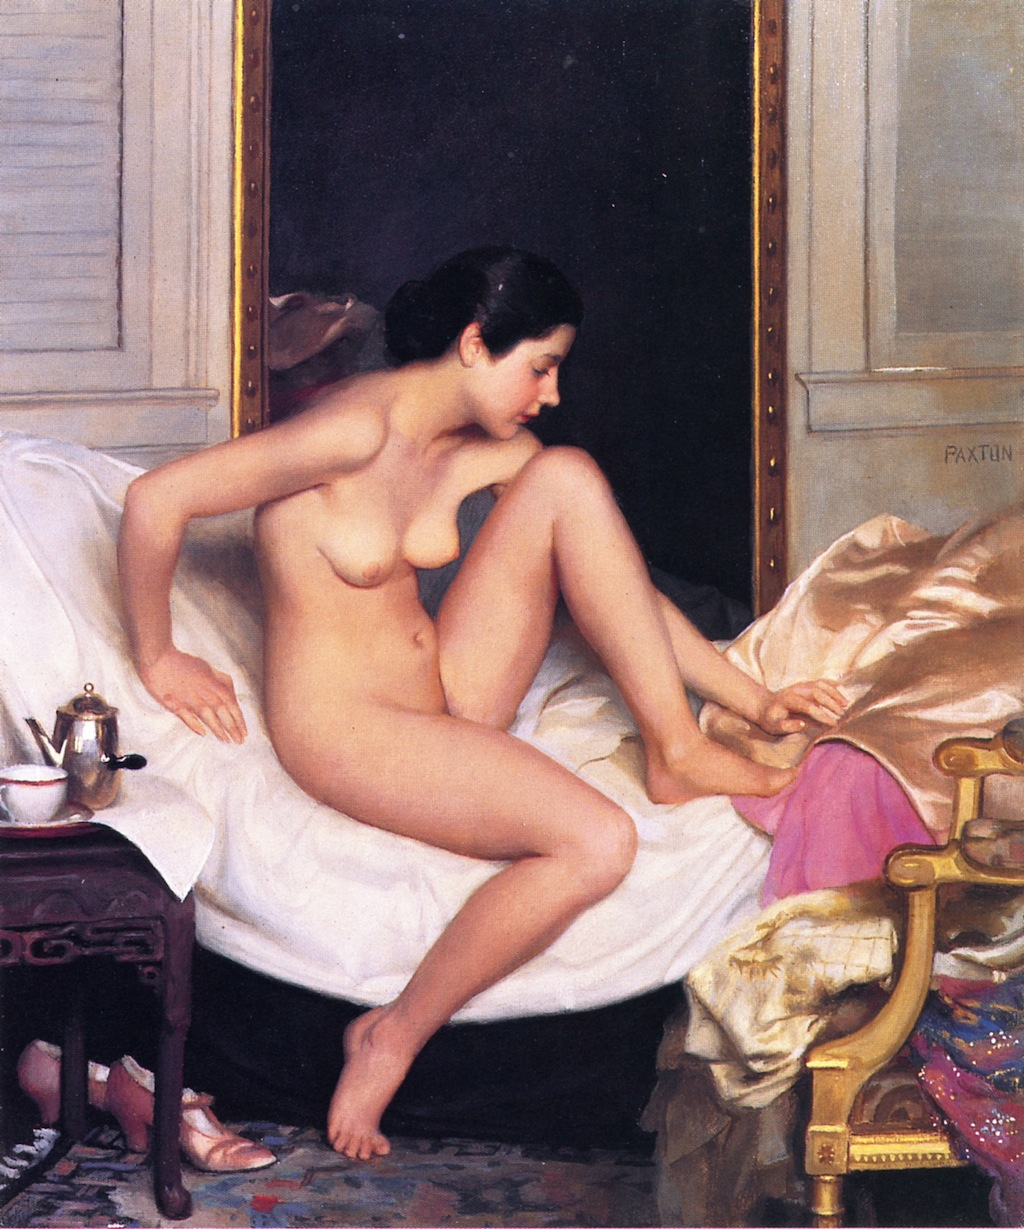 Famous female nudes paintings, very young naked girls pics